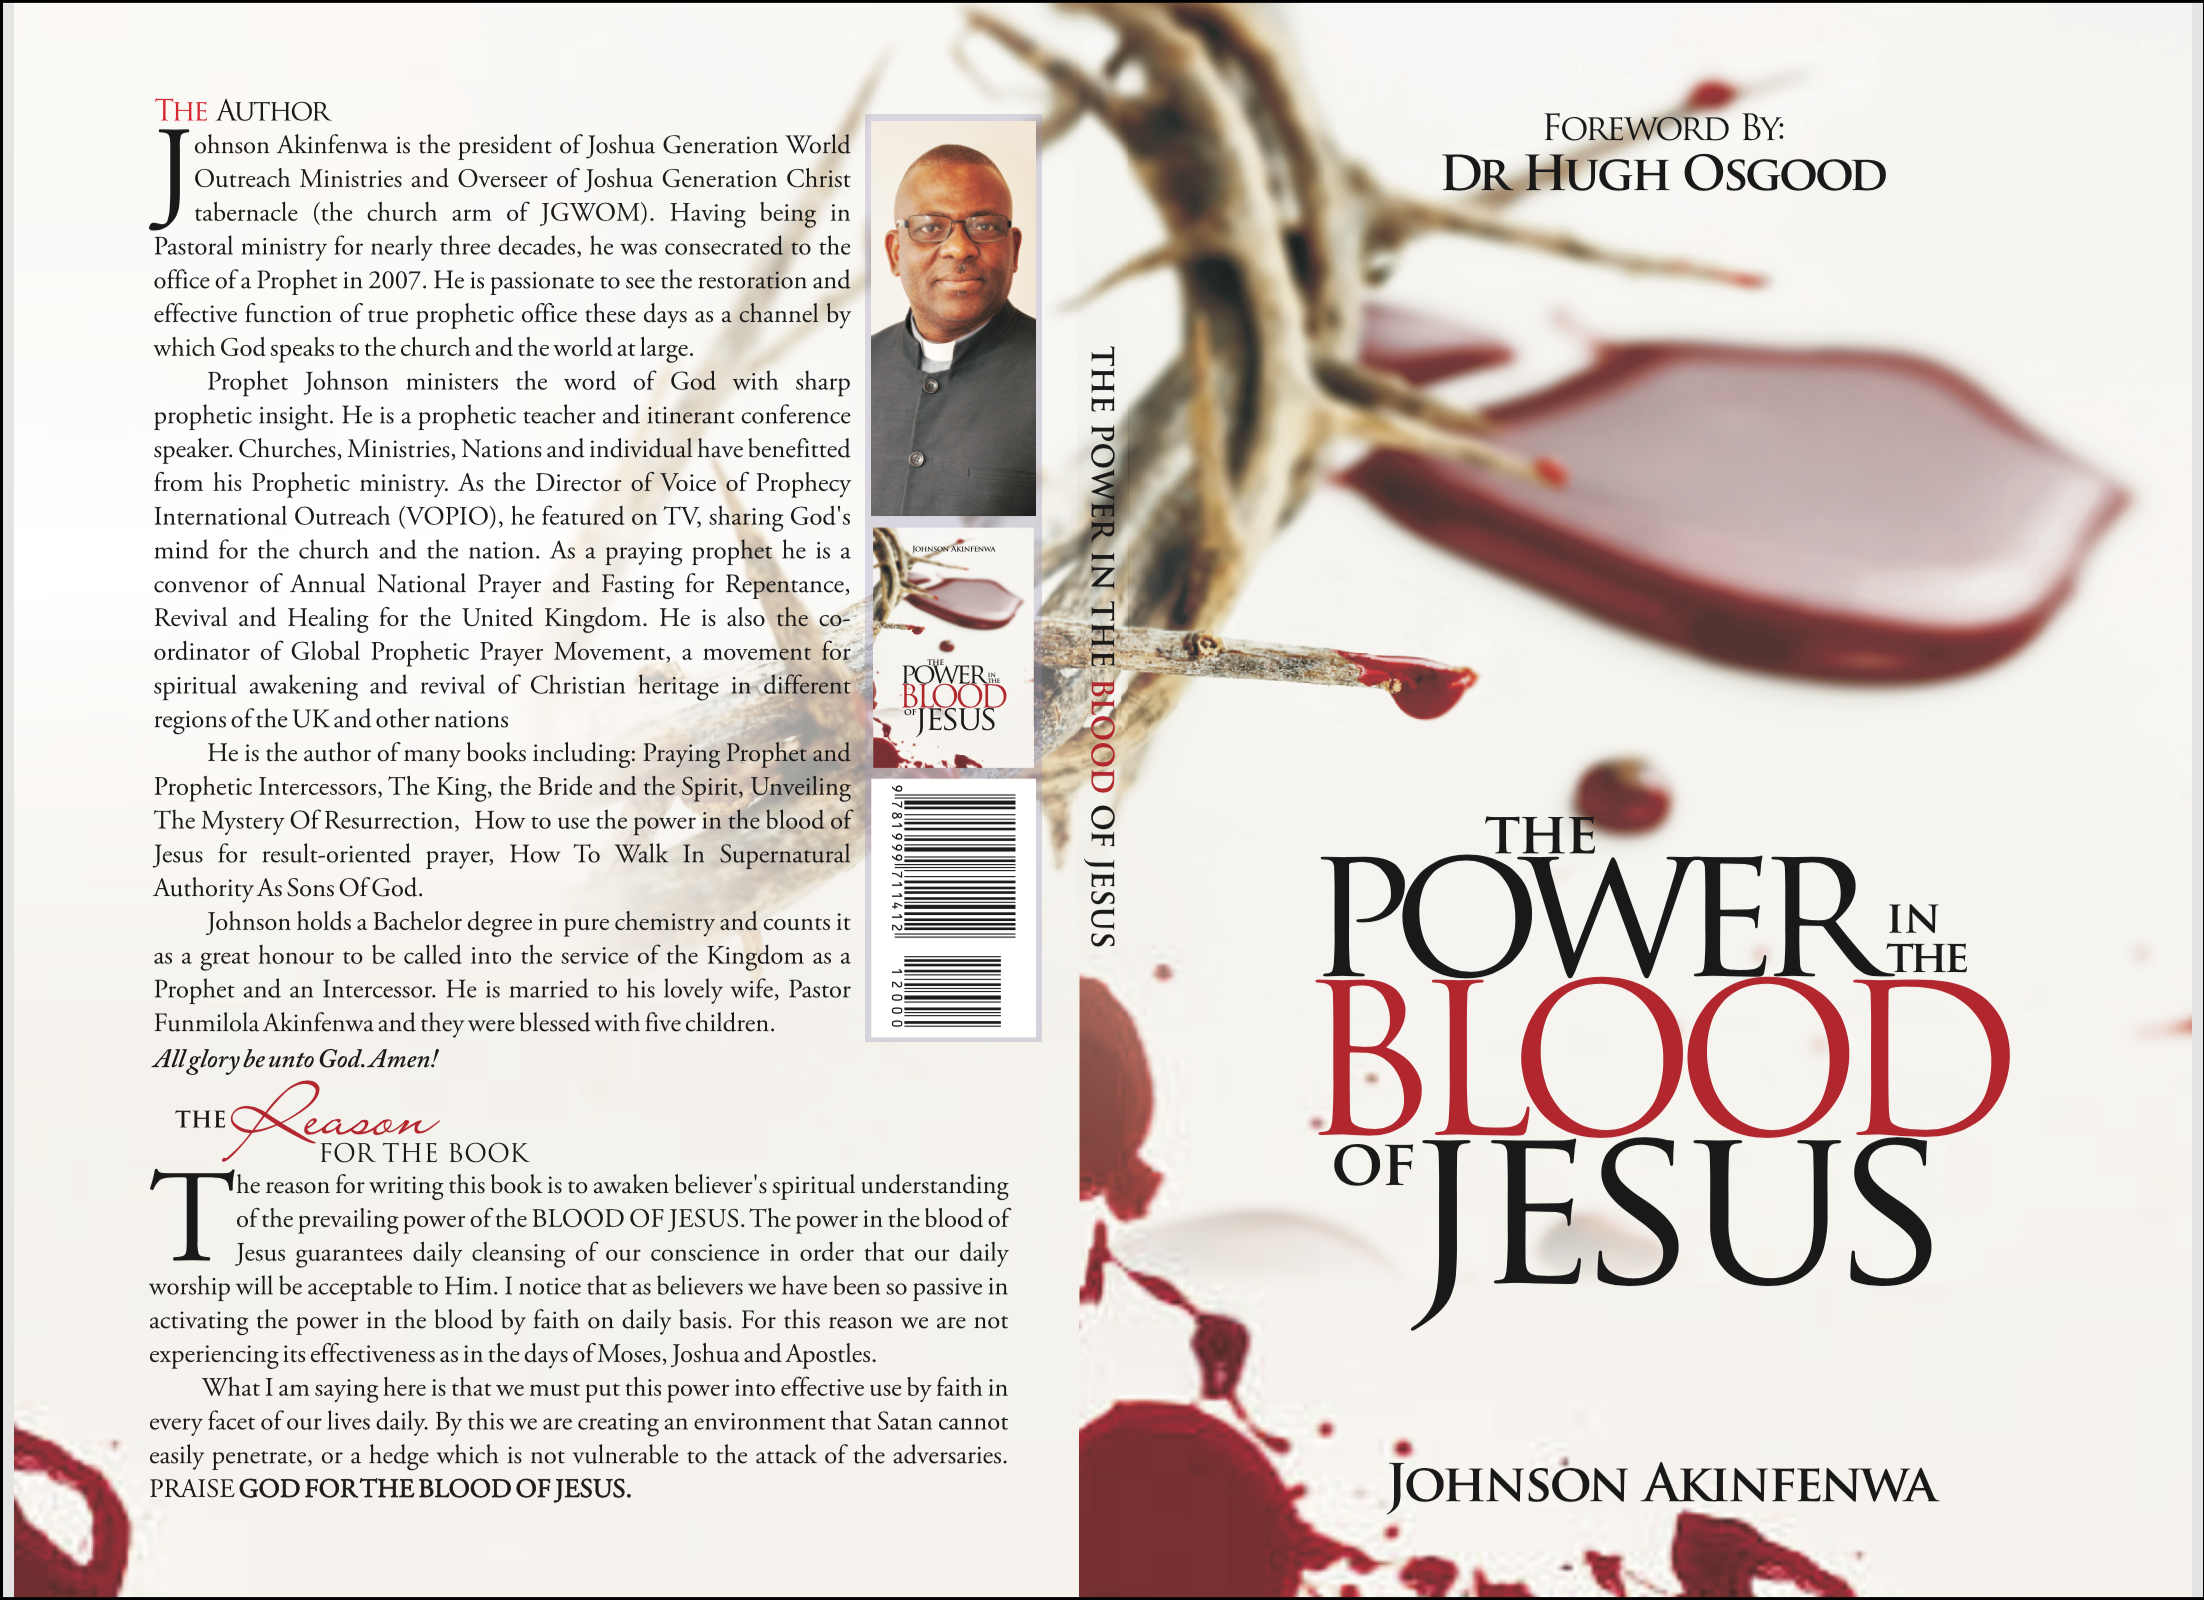 The Power in the Blood of Jesus. - The purpose of this book is to bring back the message of the power in the blood of Jesus to the church. Secondly, the book is written to awaken believer's spiritual understanding of the prevailing power of the blood of Jesus.(Buy It Now for £10)ORDER ON AMAZON ->